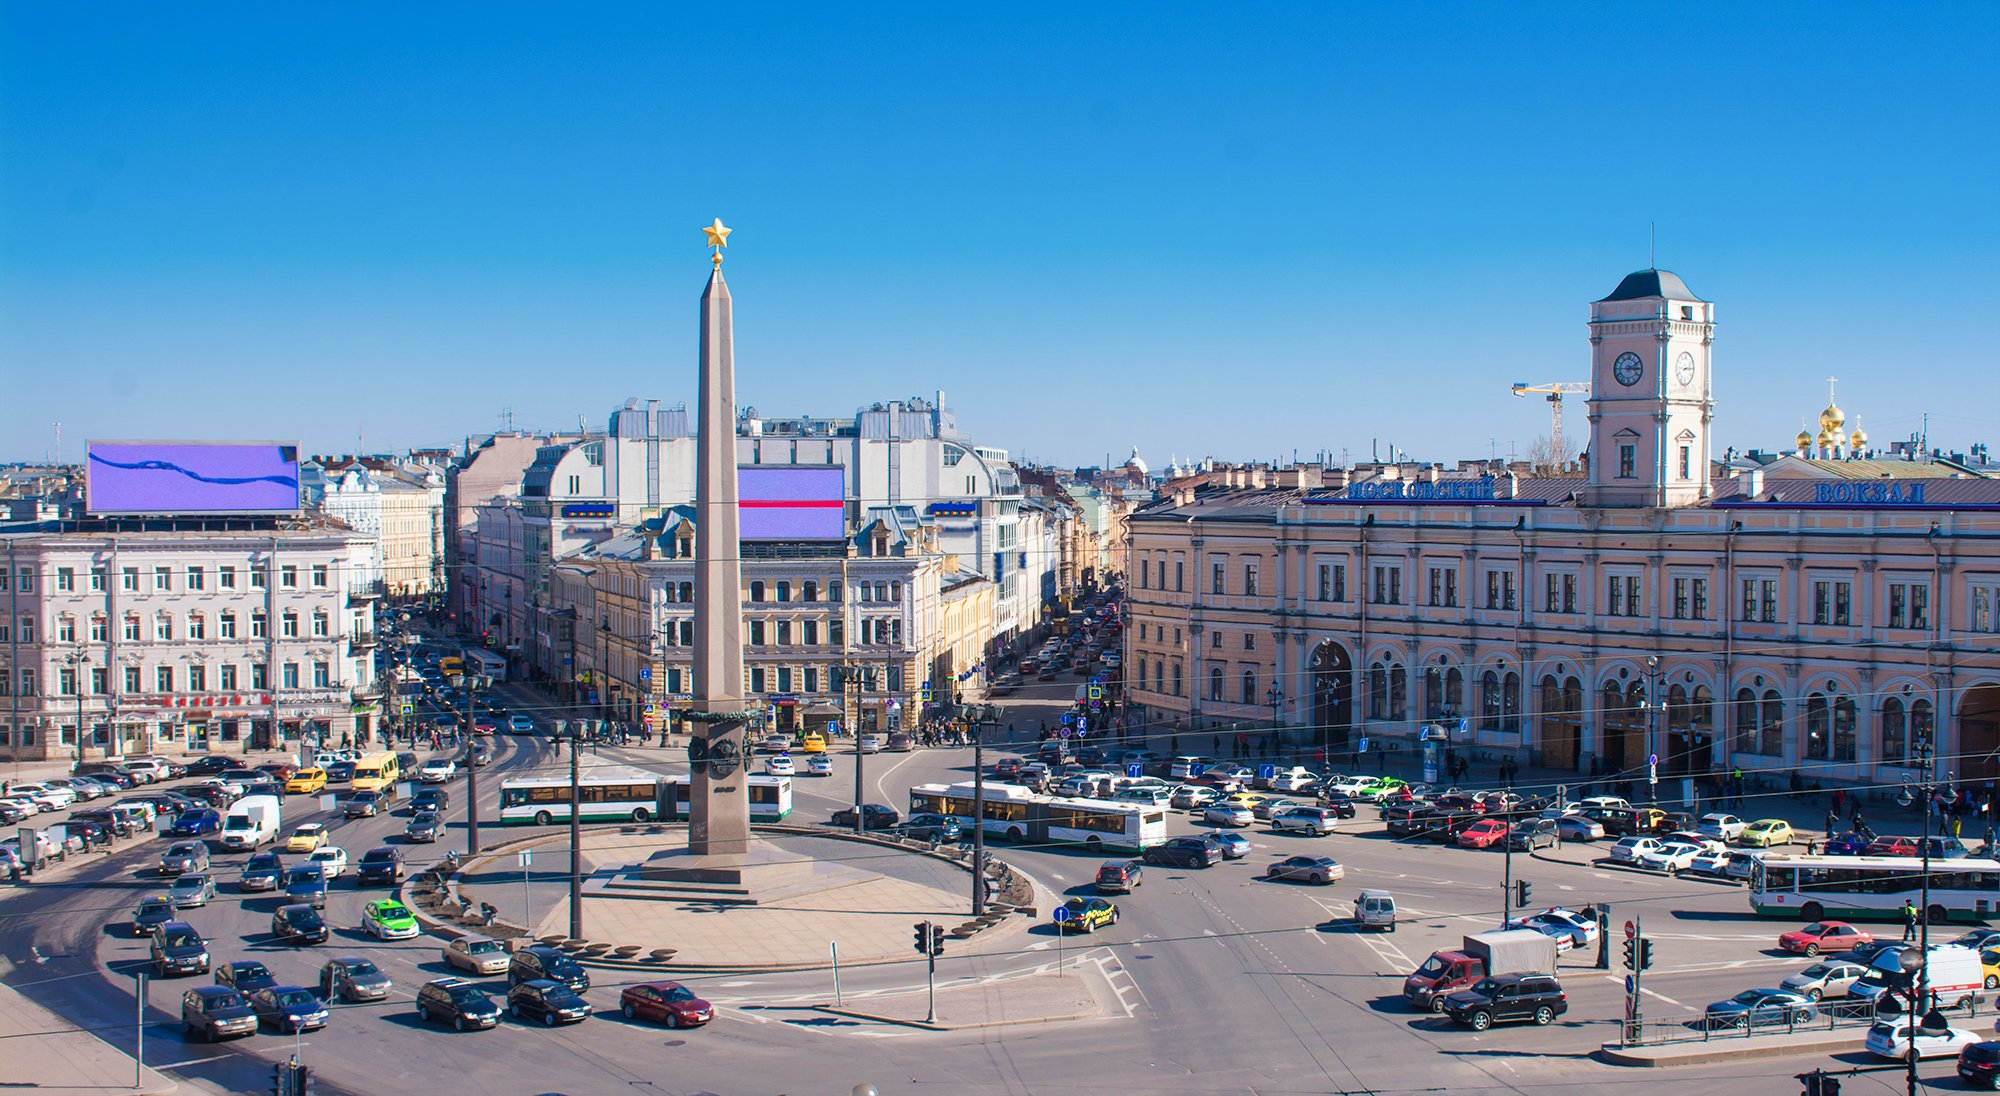 Vosstaniya square in St Petersburg, Russia